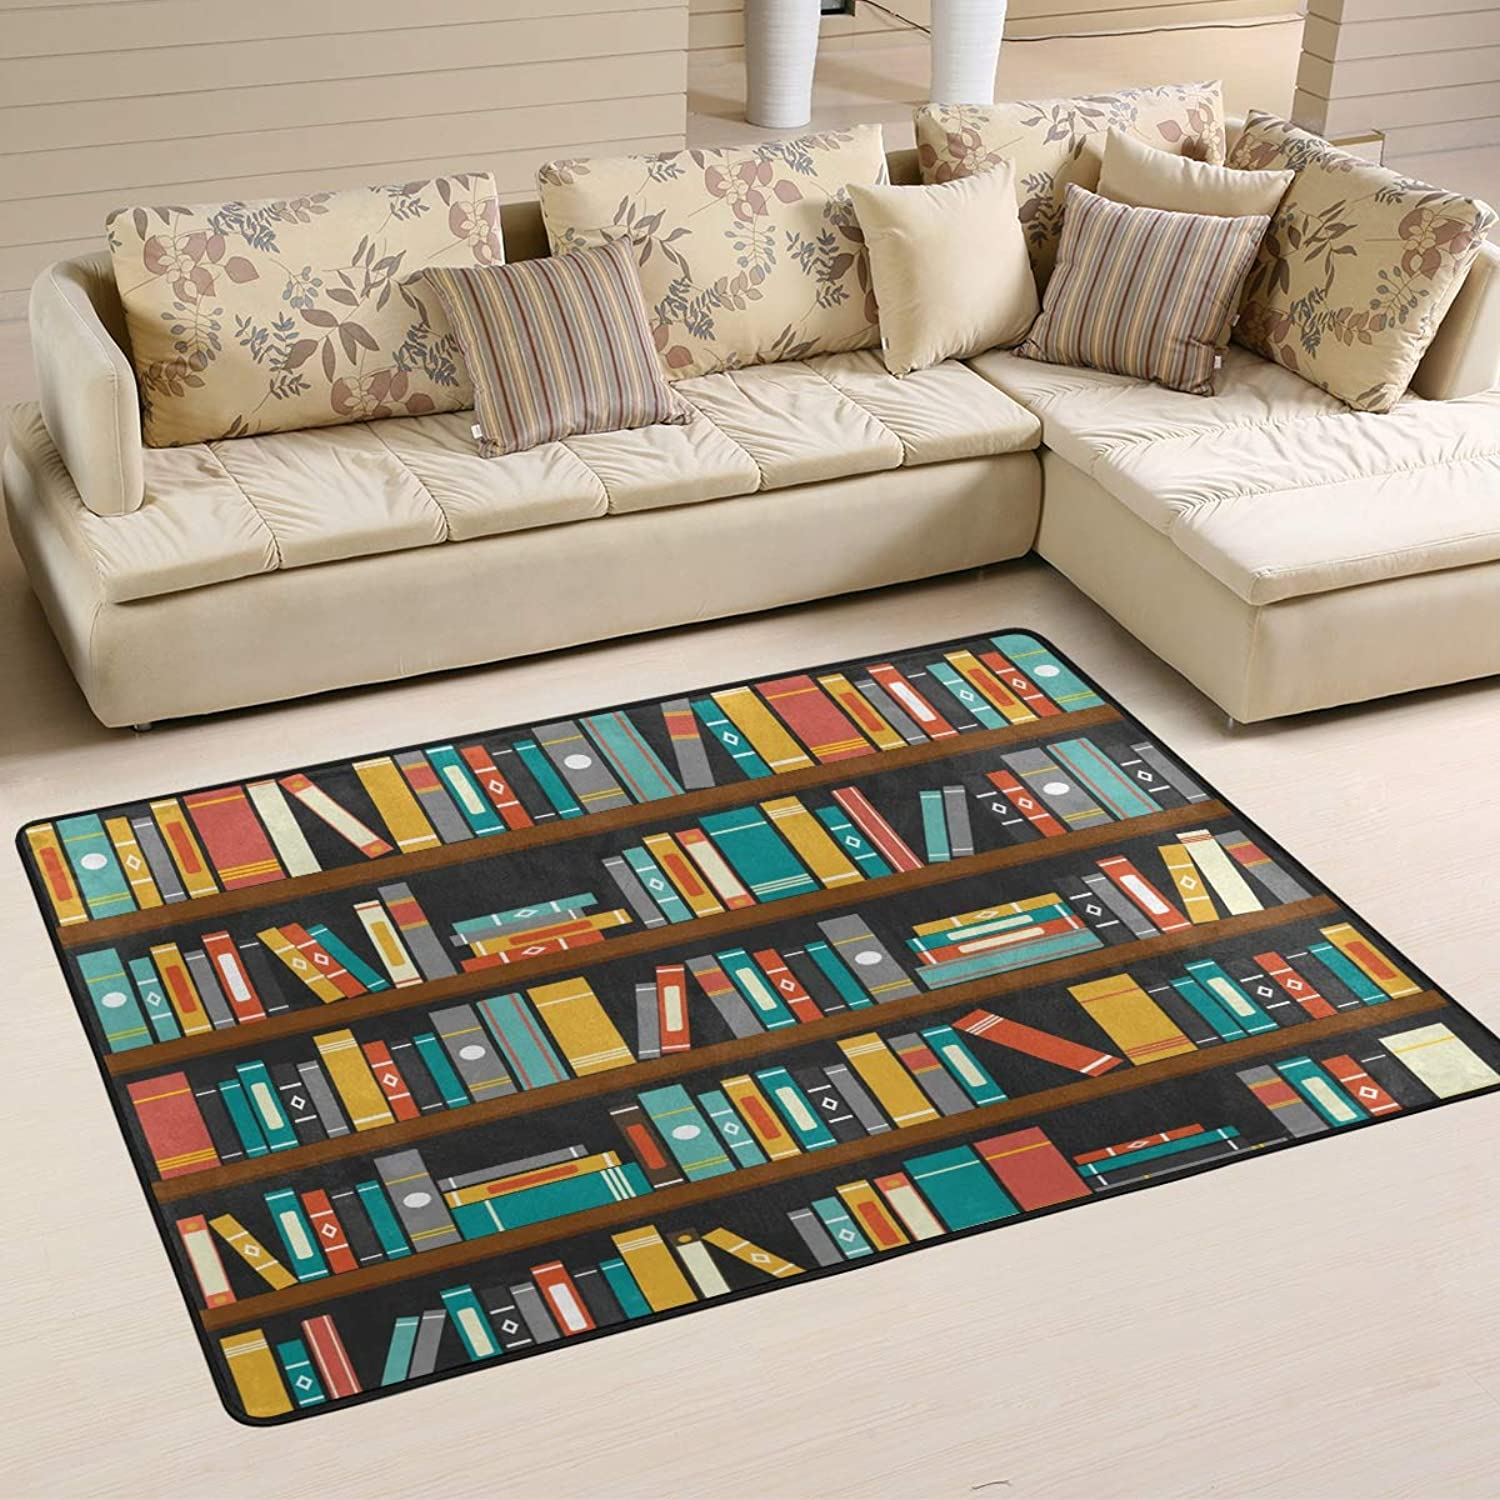 Area Rugs Doormats Library Book Shelf Soft Carpet Mat 6'x4' (72x48 Inches) for Living Dining Dorm Room Bedroom Home Decorative